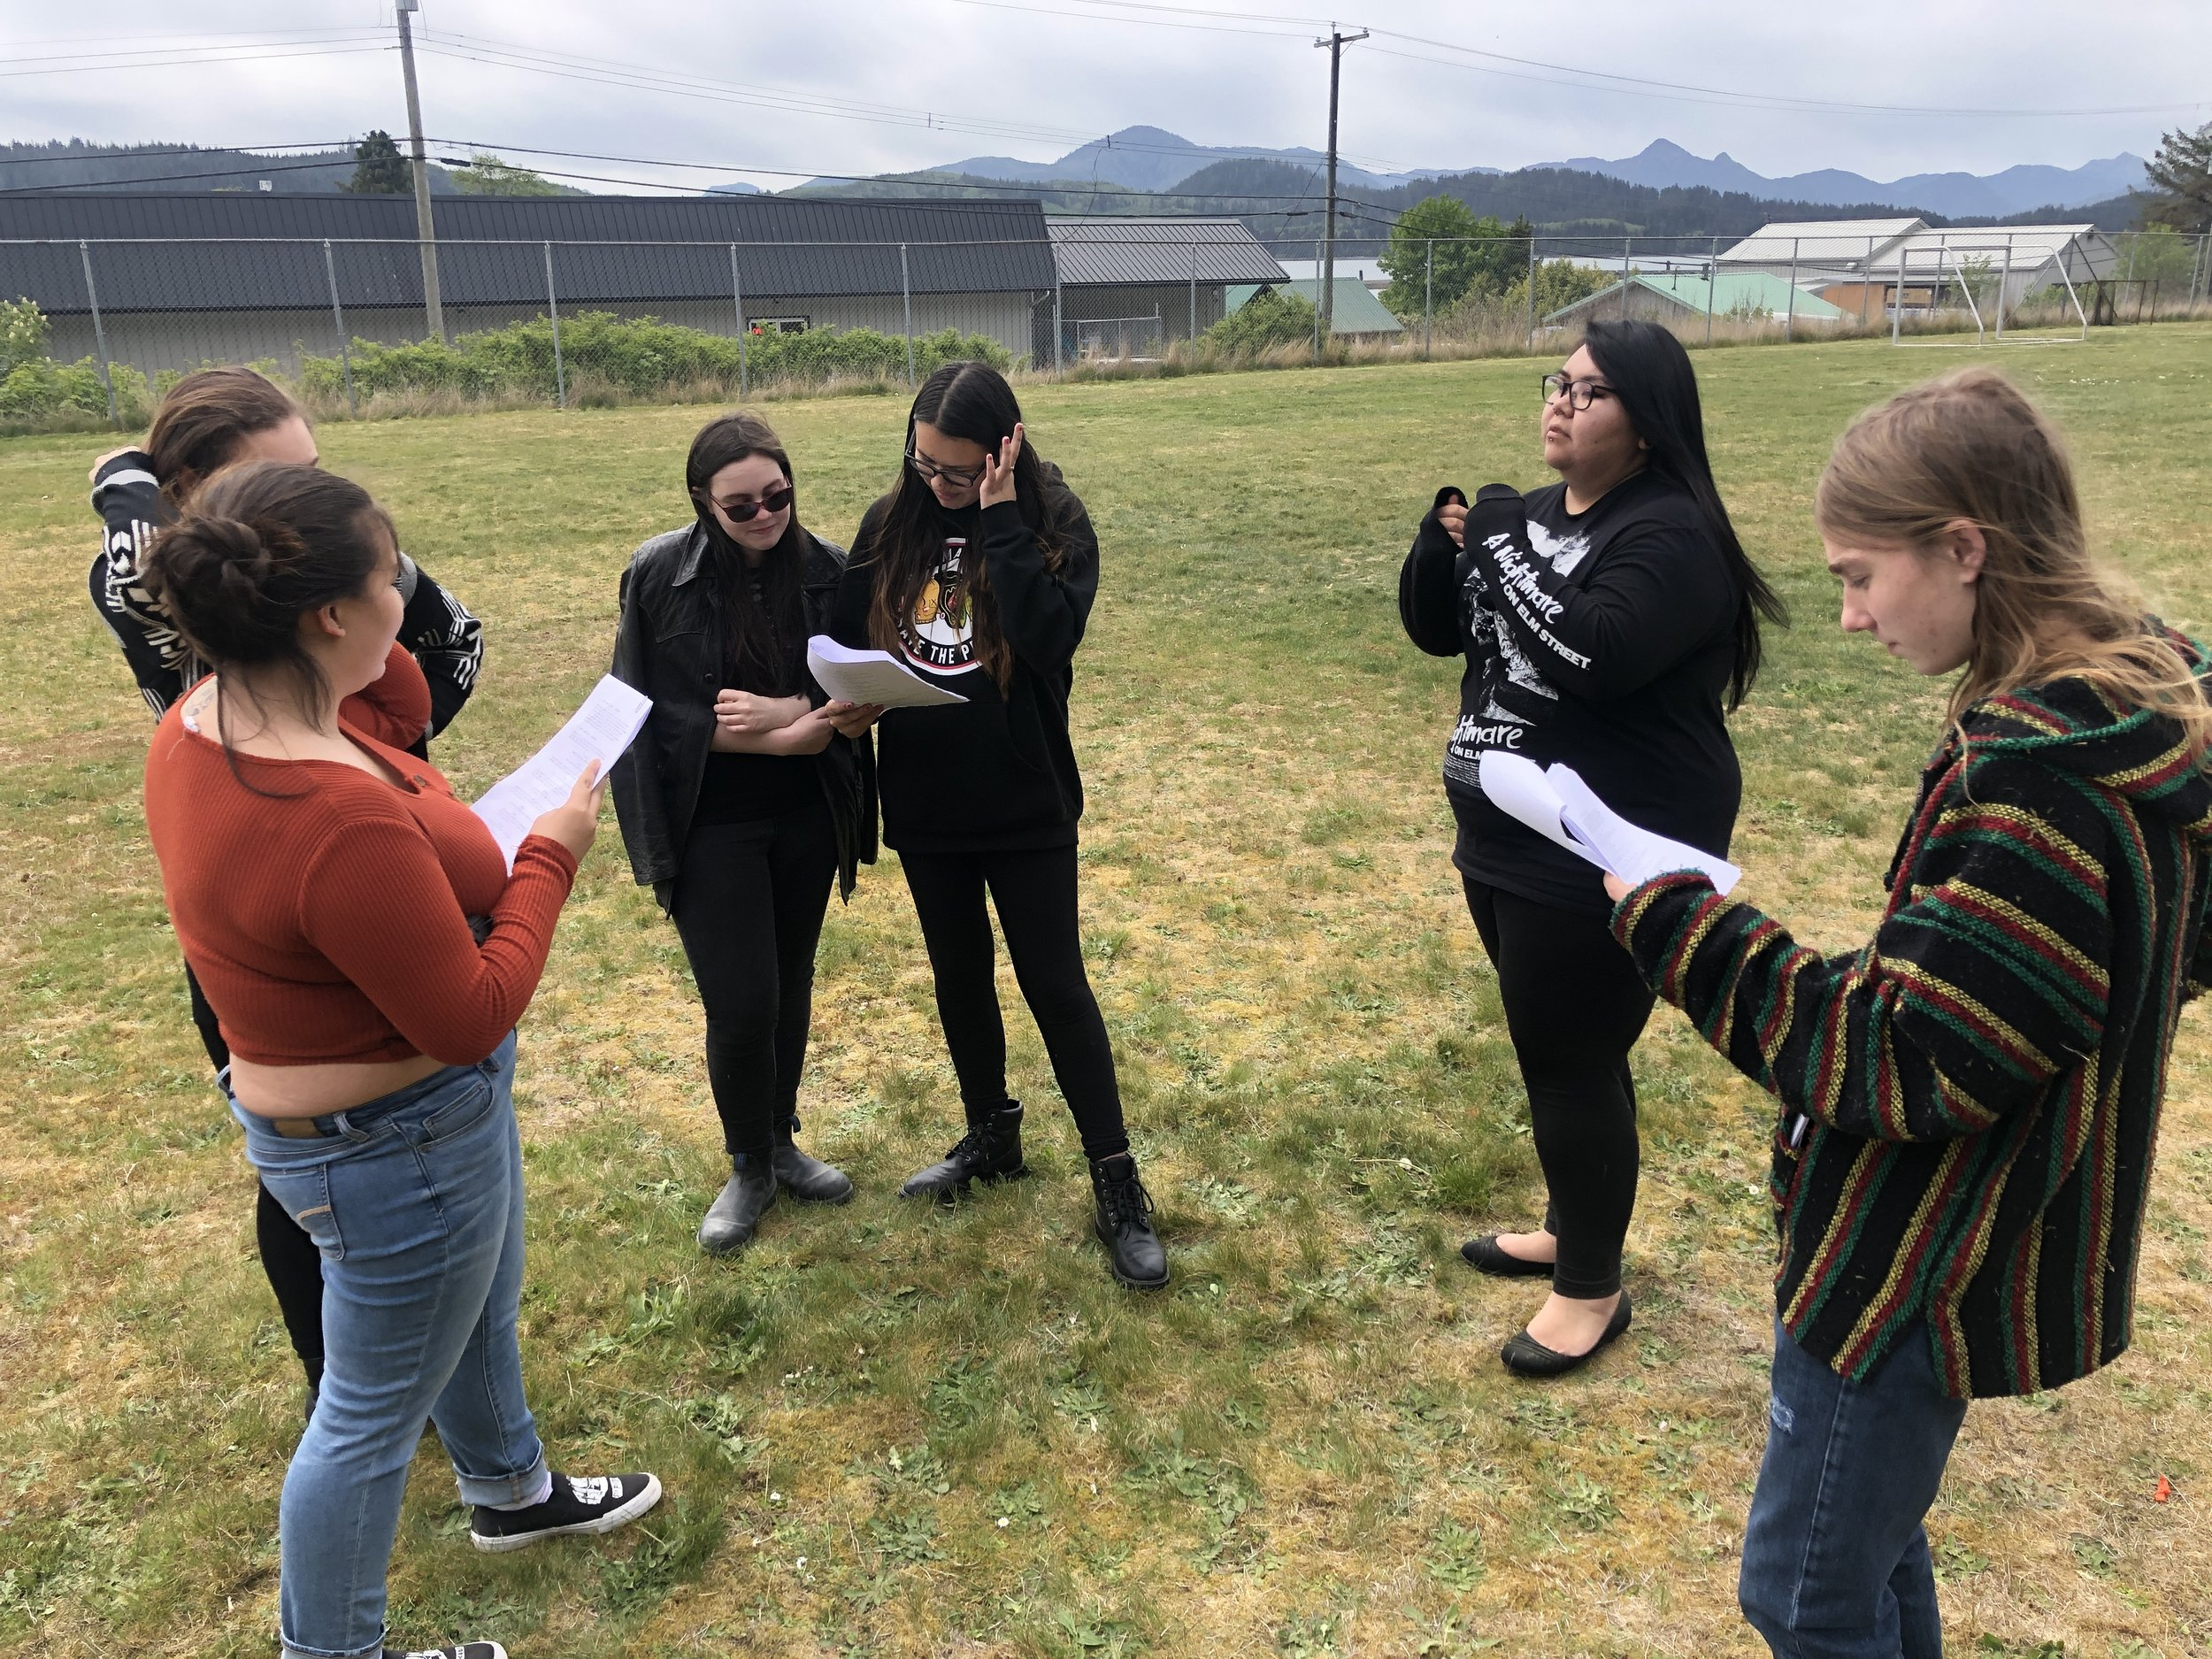 Outside in the school field, Team #HORRO go over the script